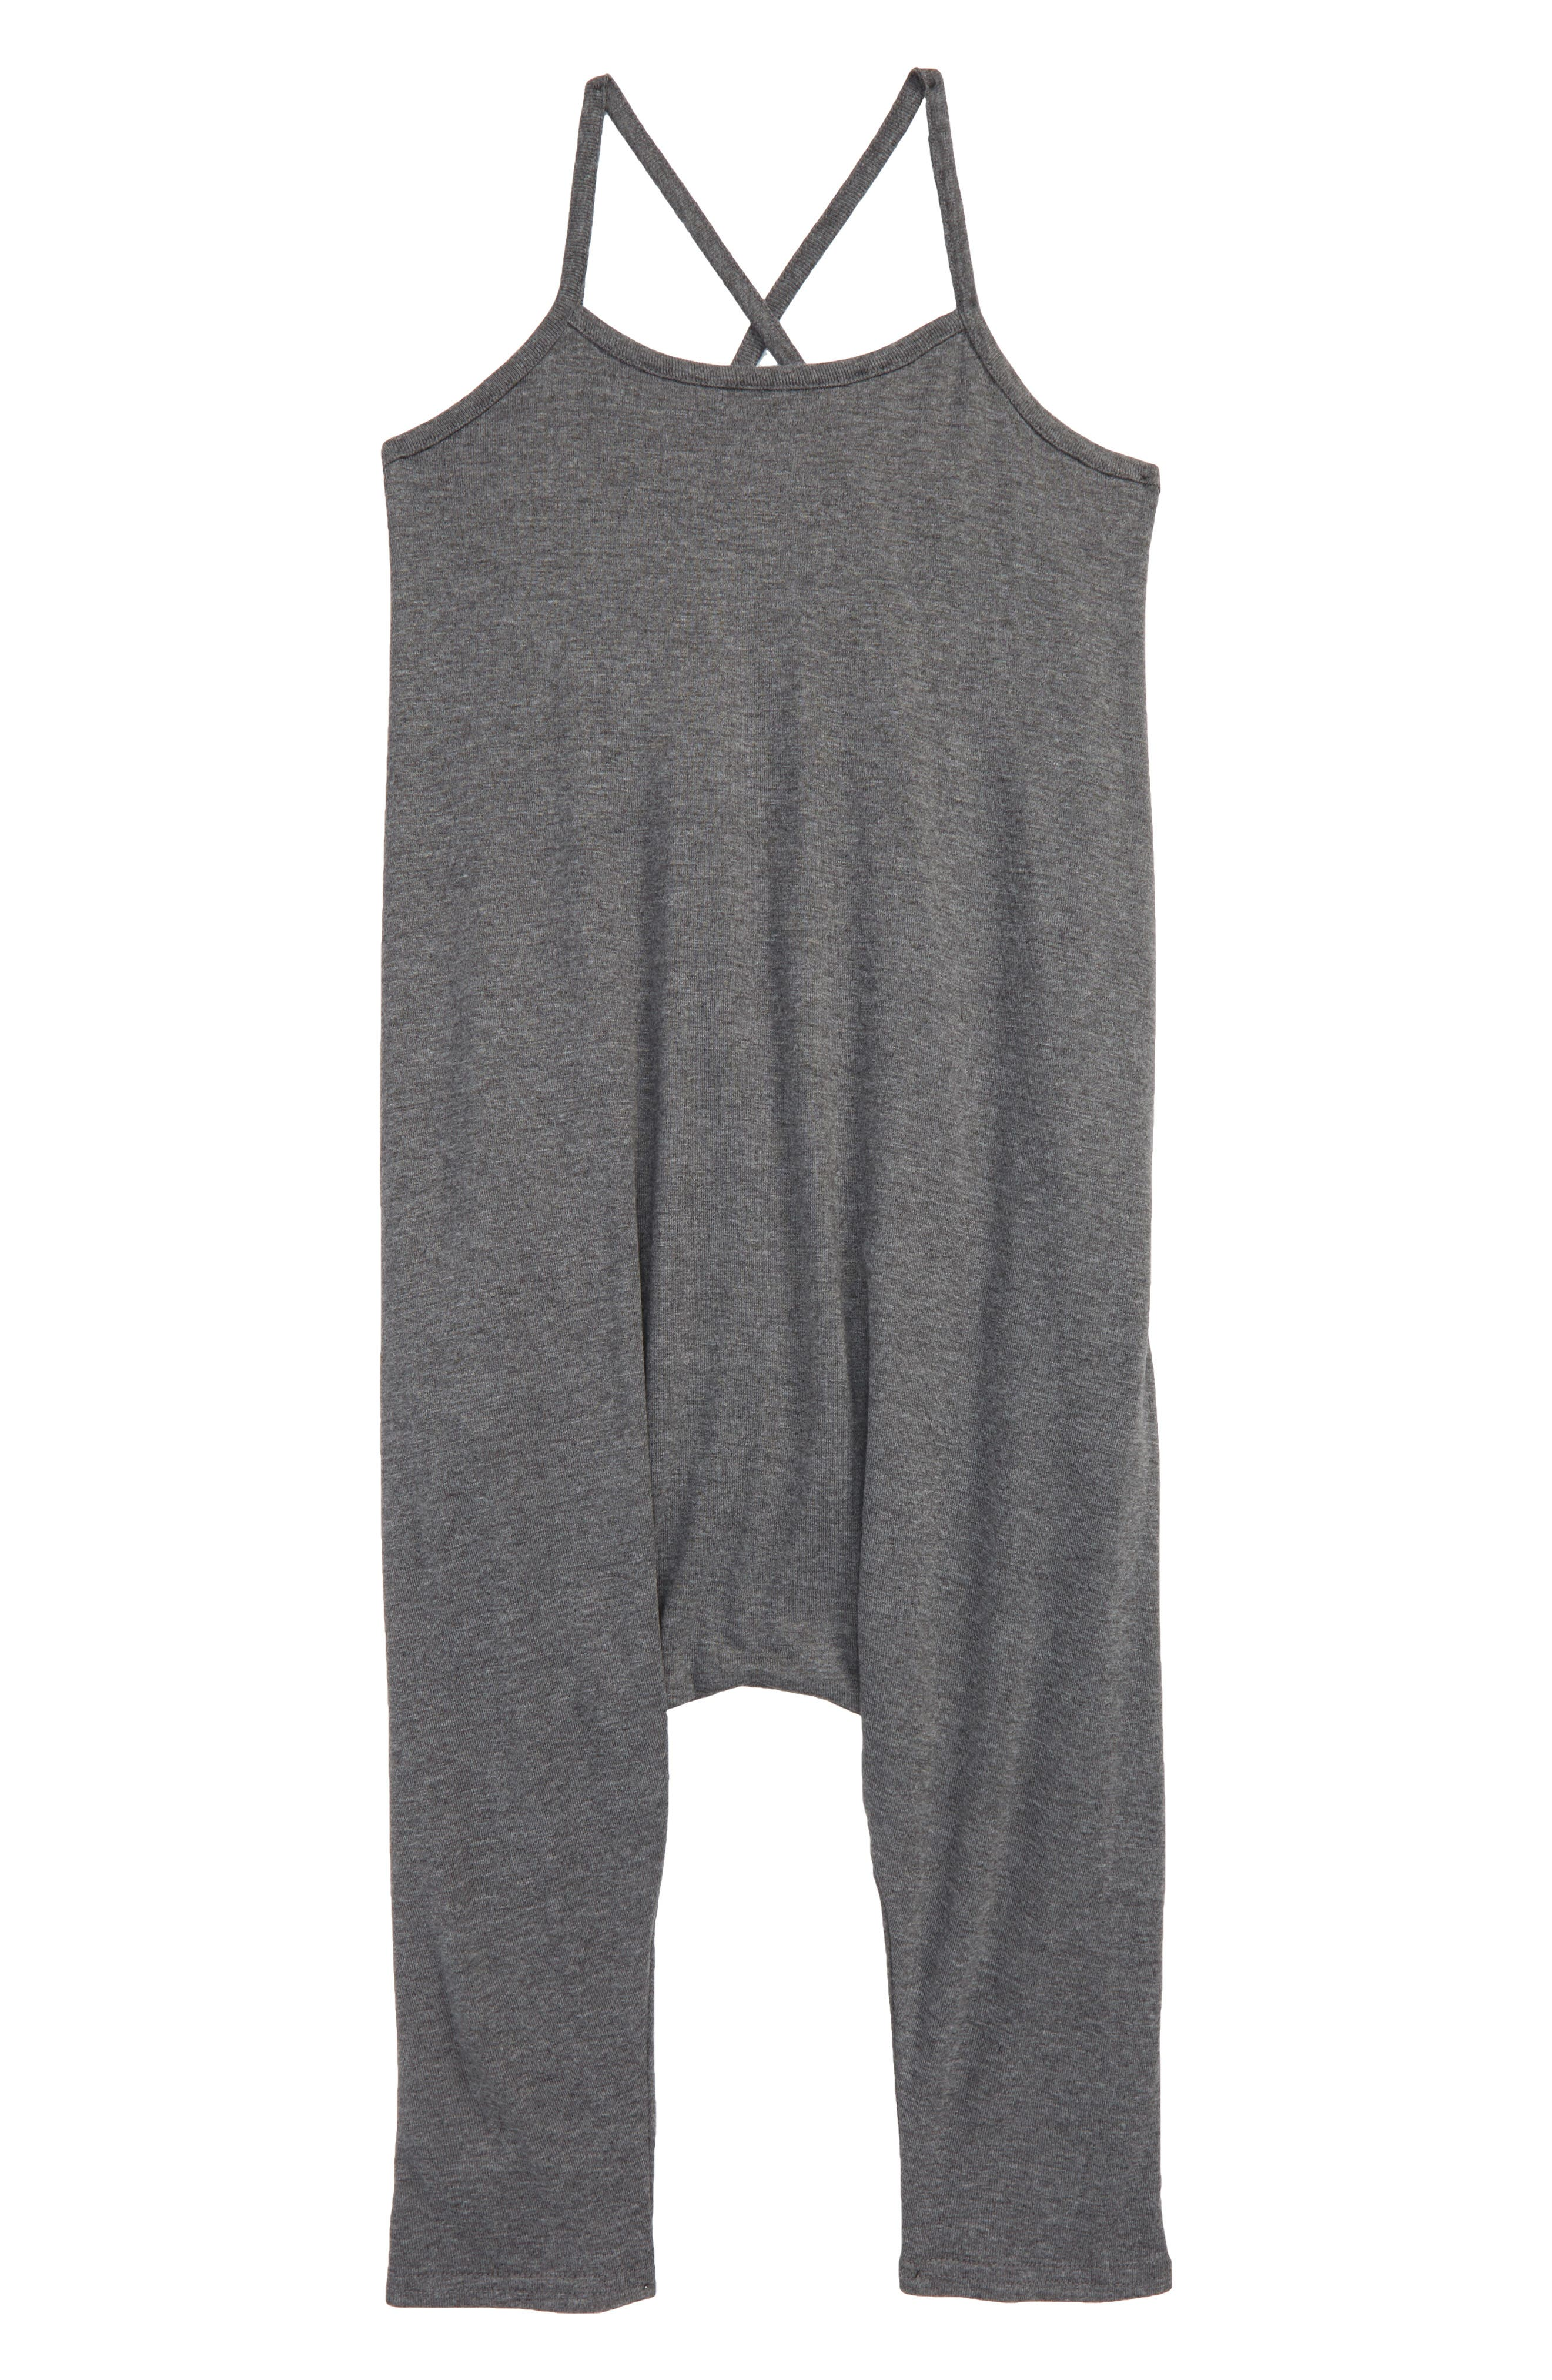 Knit Tank Romper,                         Main,                         color, Grey Charcoal Heather